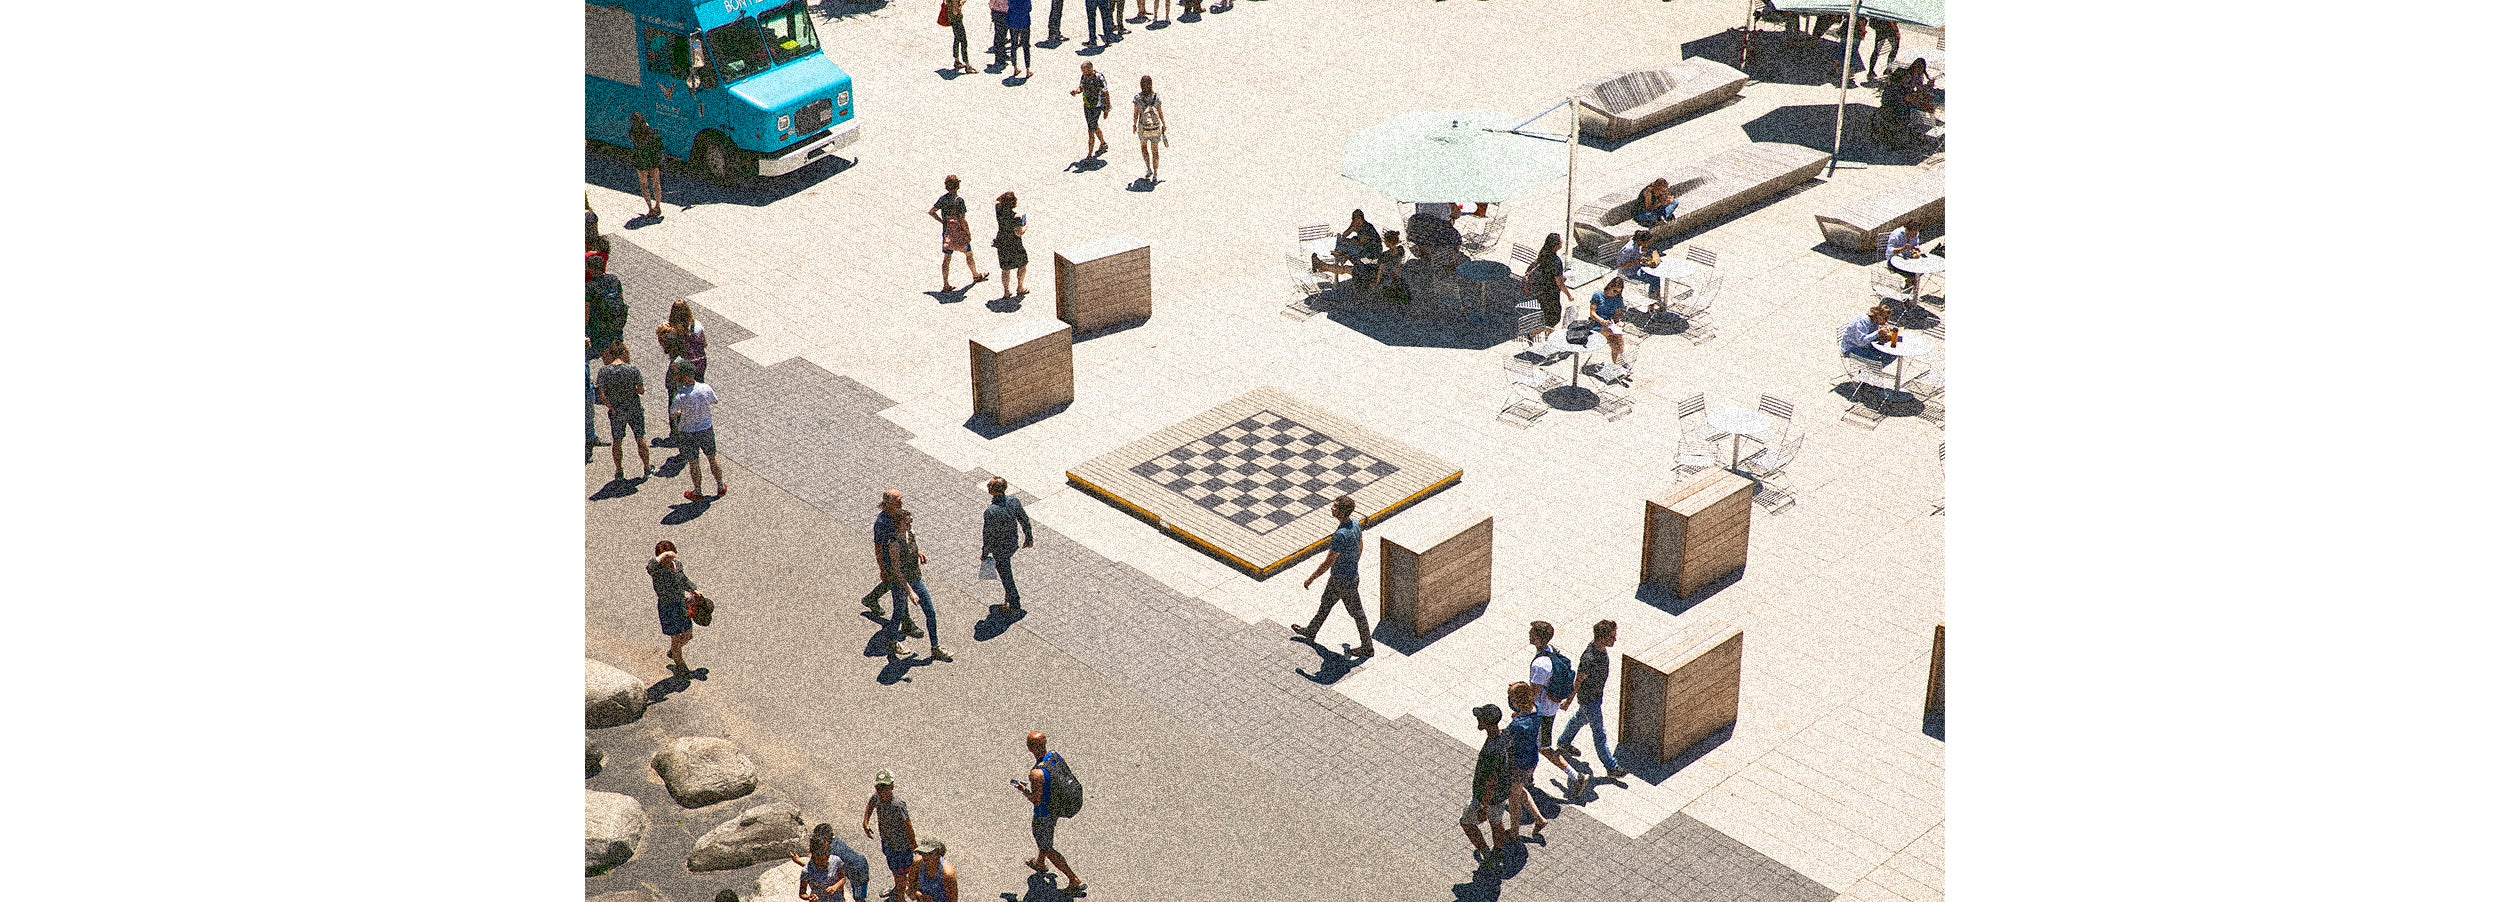 Overview of tables, food truck, passers-by in Science Center Plaza.